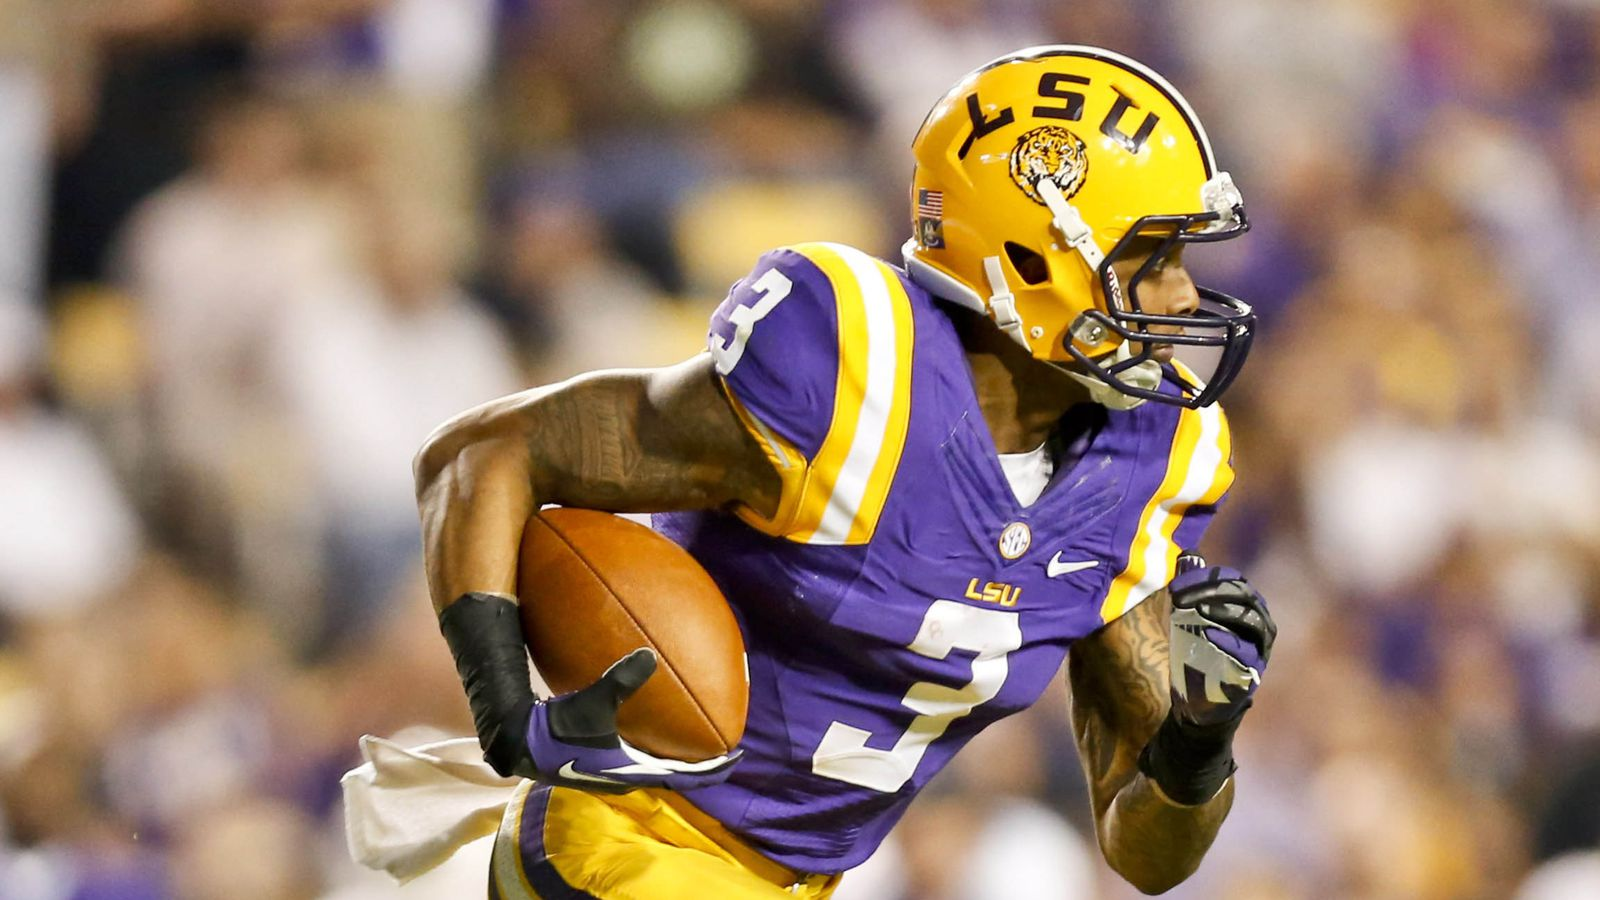 2014 Nfl Draft Prospects Lsu Wr Odell Beckham Shows He S One Of